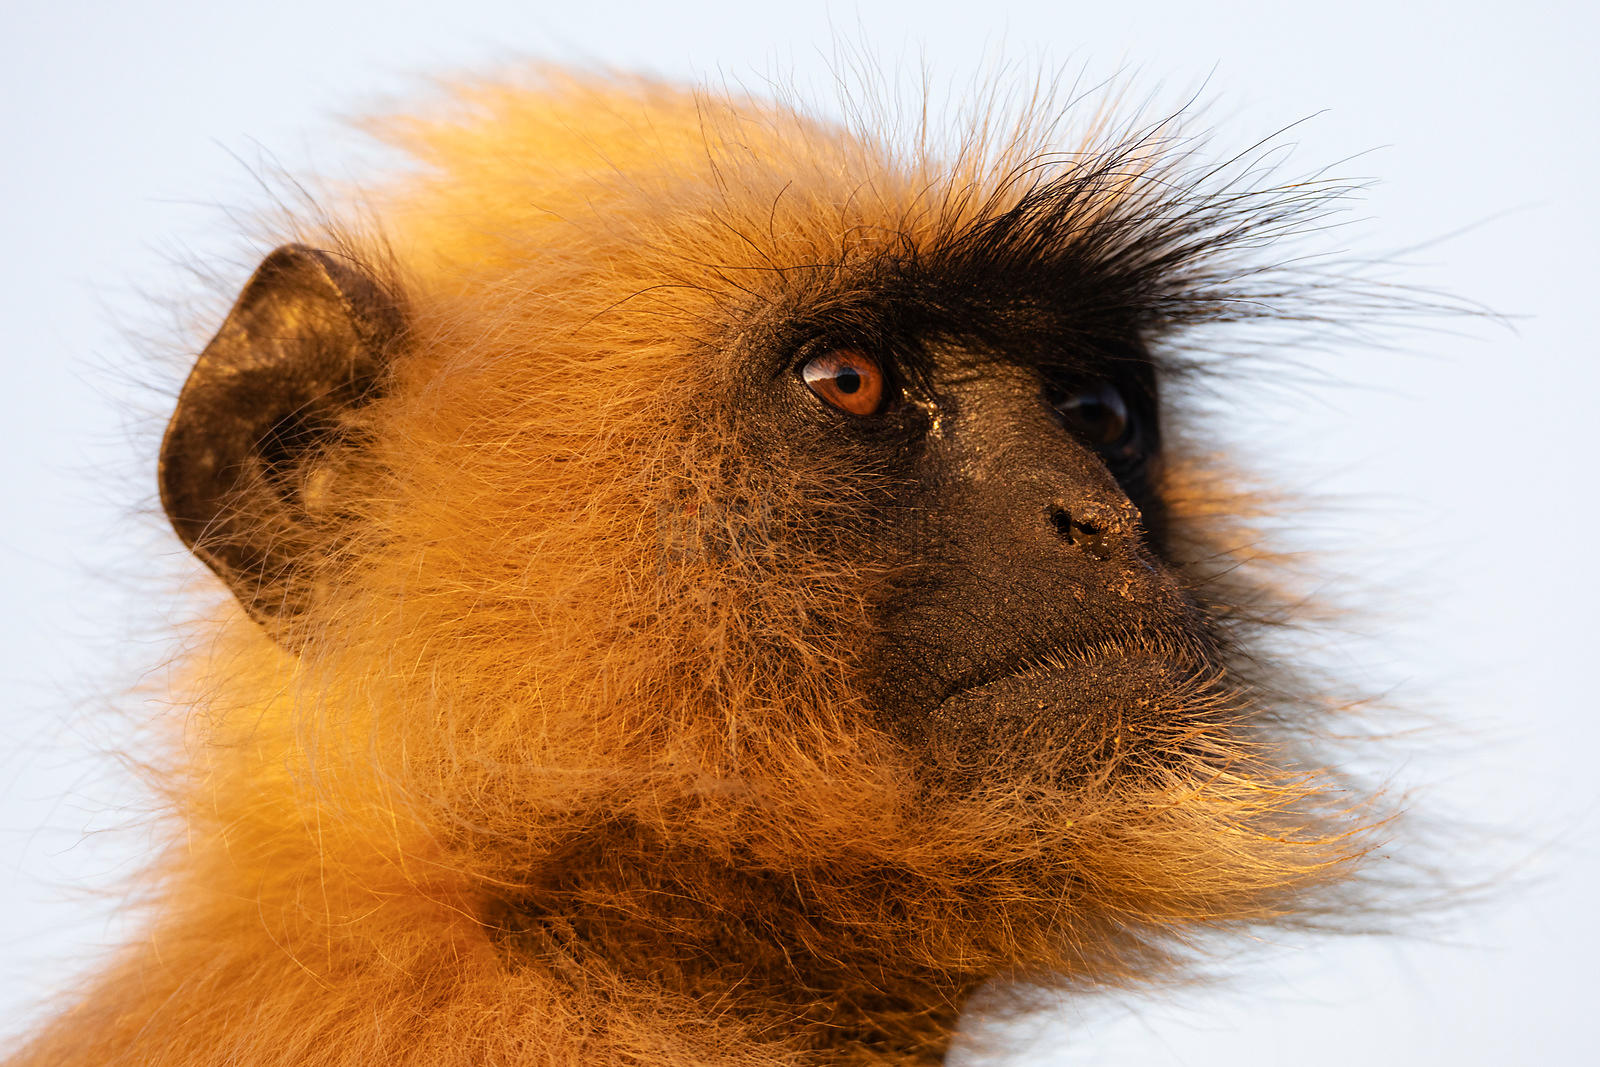 Portrait of a Commom Langur